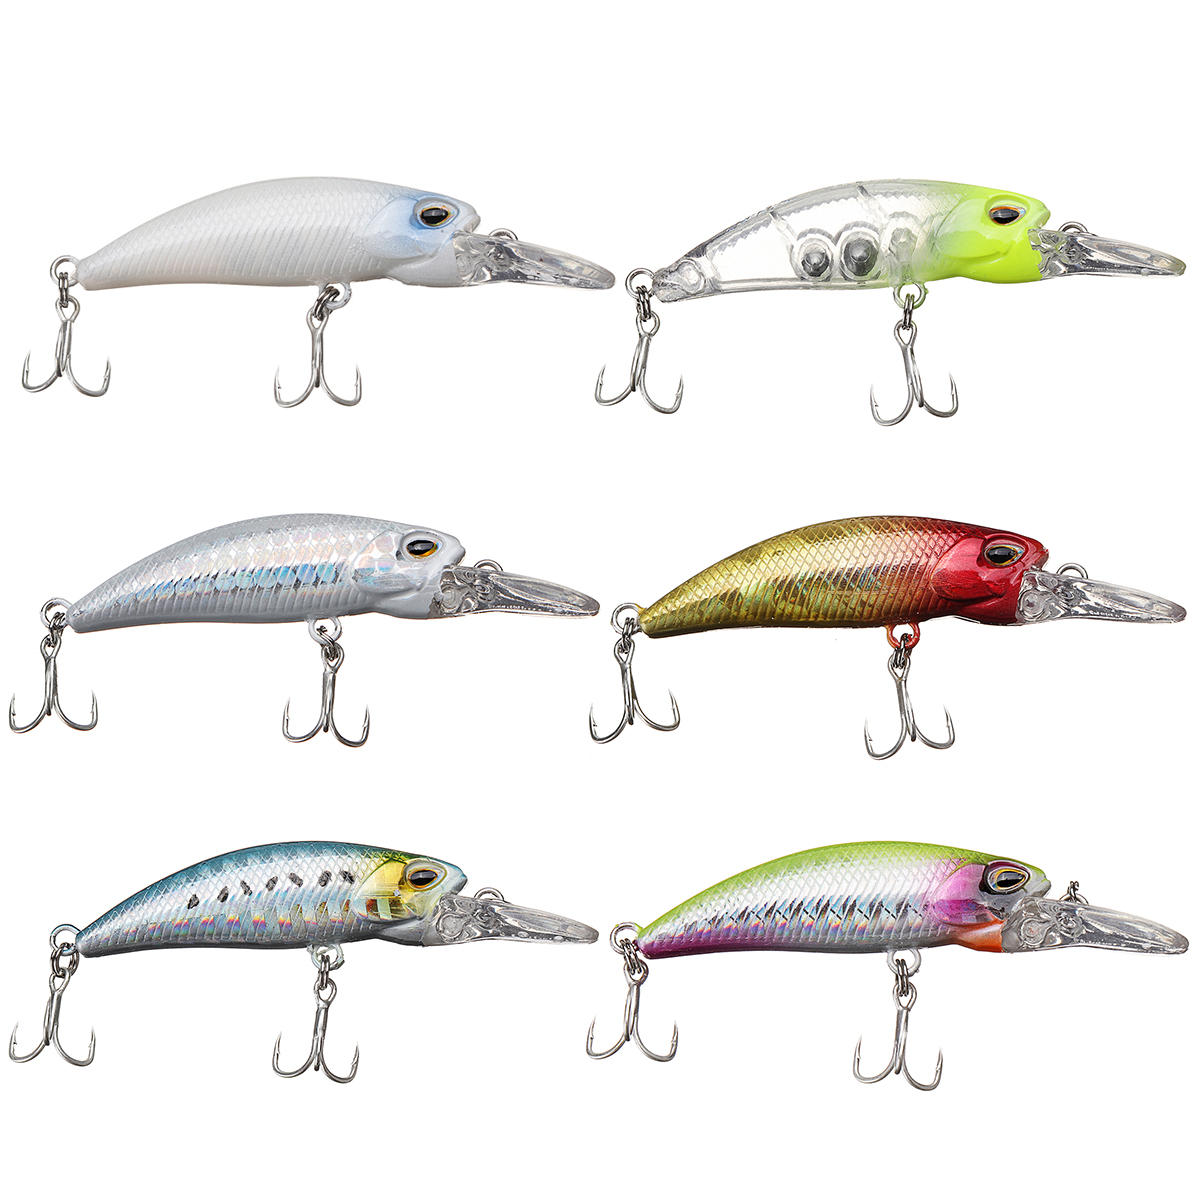 1 Pcs Fishing Lure Outdoor Hunting Fishing Fish Bait Fish Crank Baits Fishiing Tools